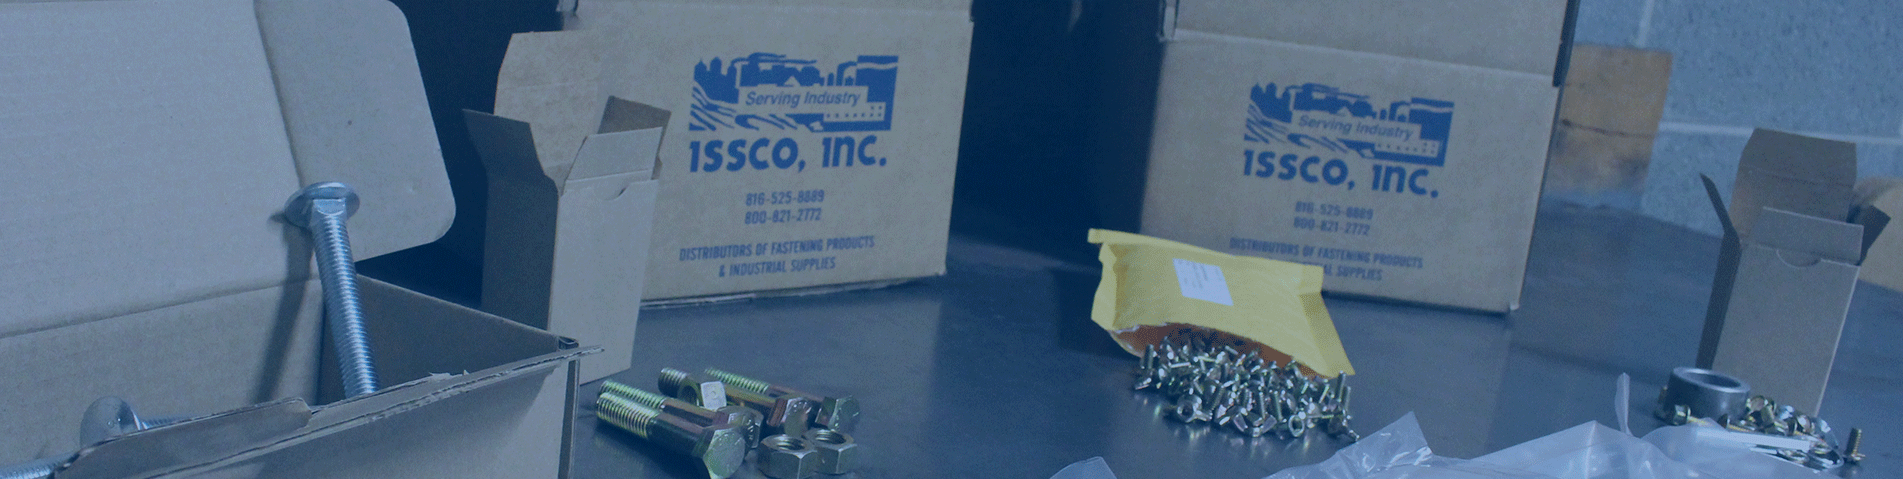 ISSCO boxes containing fasteners on a table